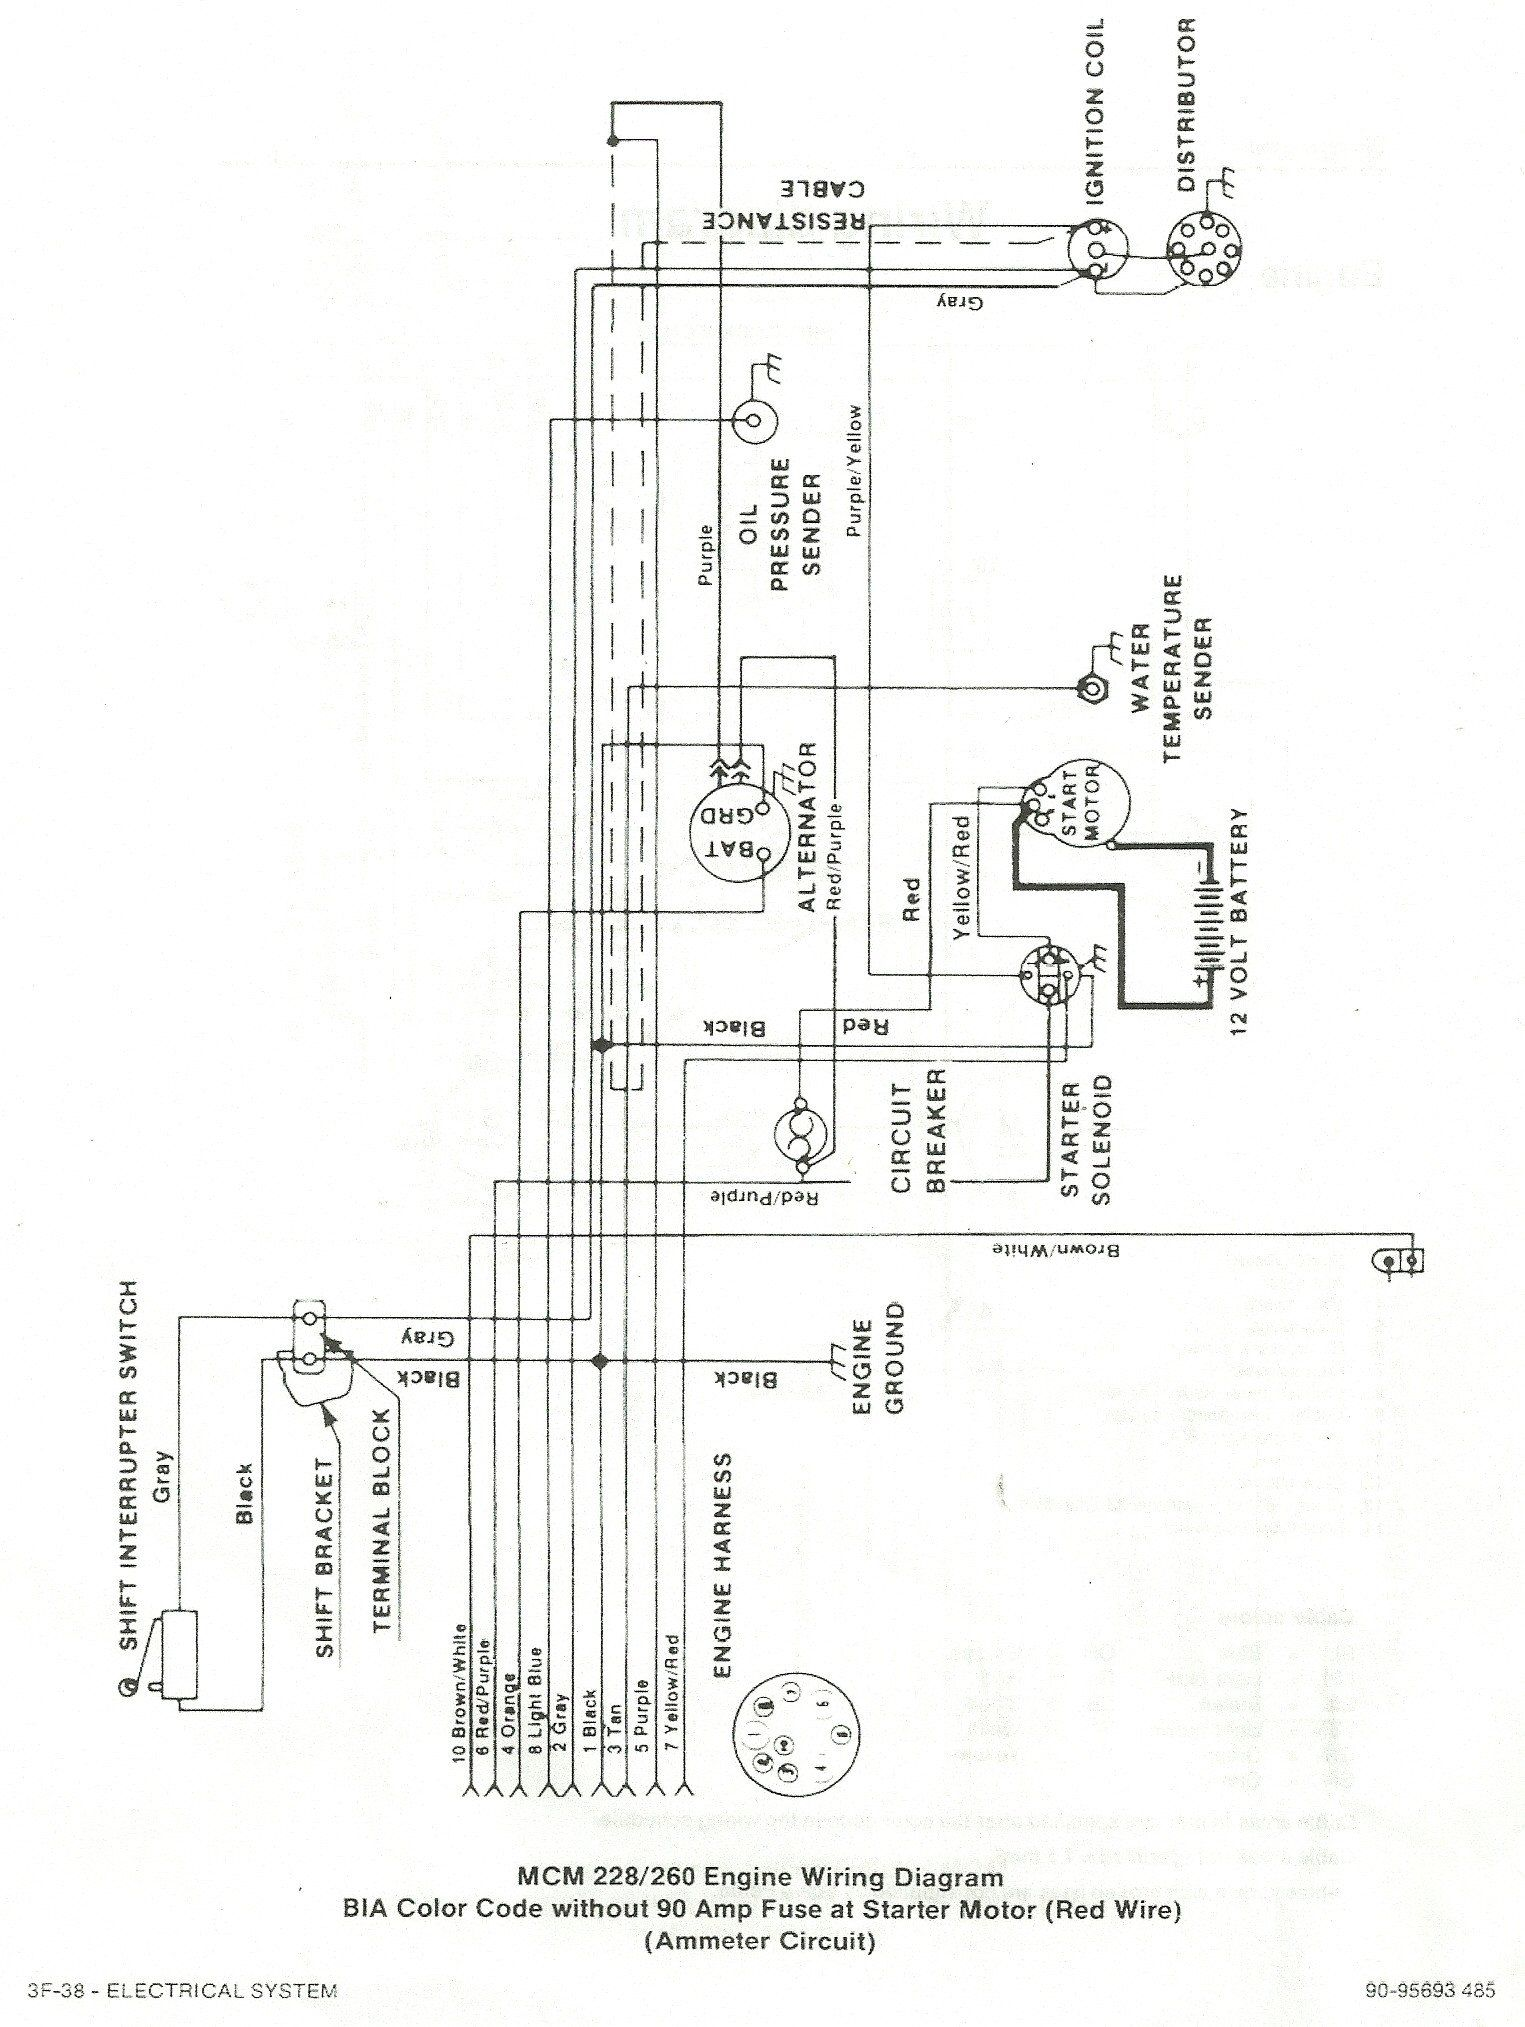 small resolution of 1989 mercruiser 7 4 engine diagram wiring diagram toolbox 1984s 10 wiring diagram